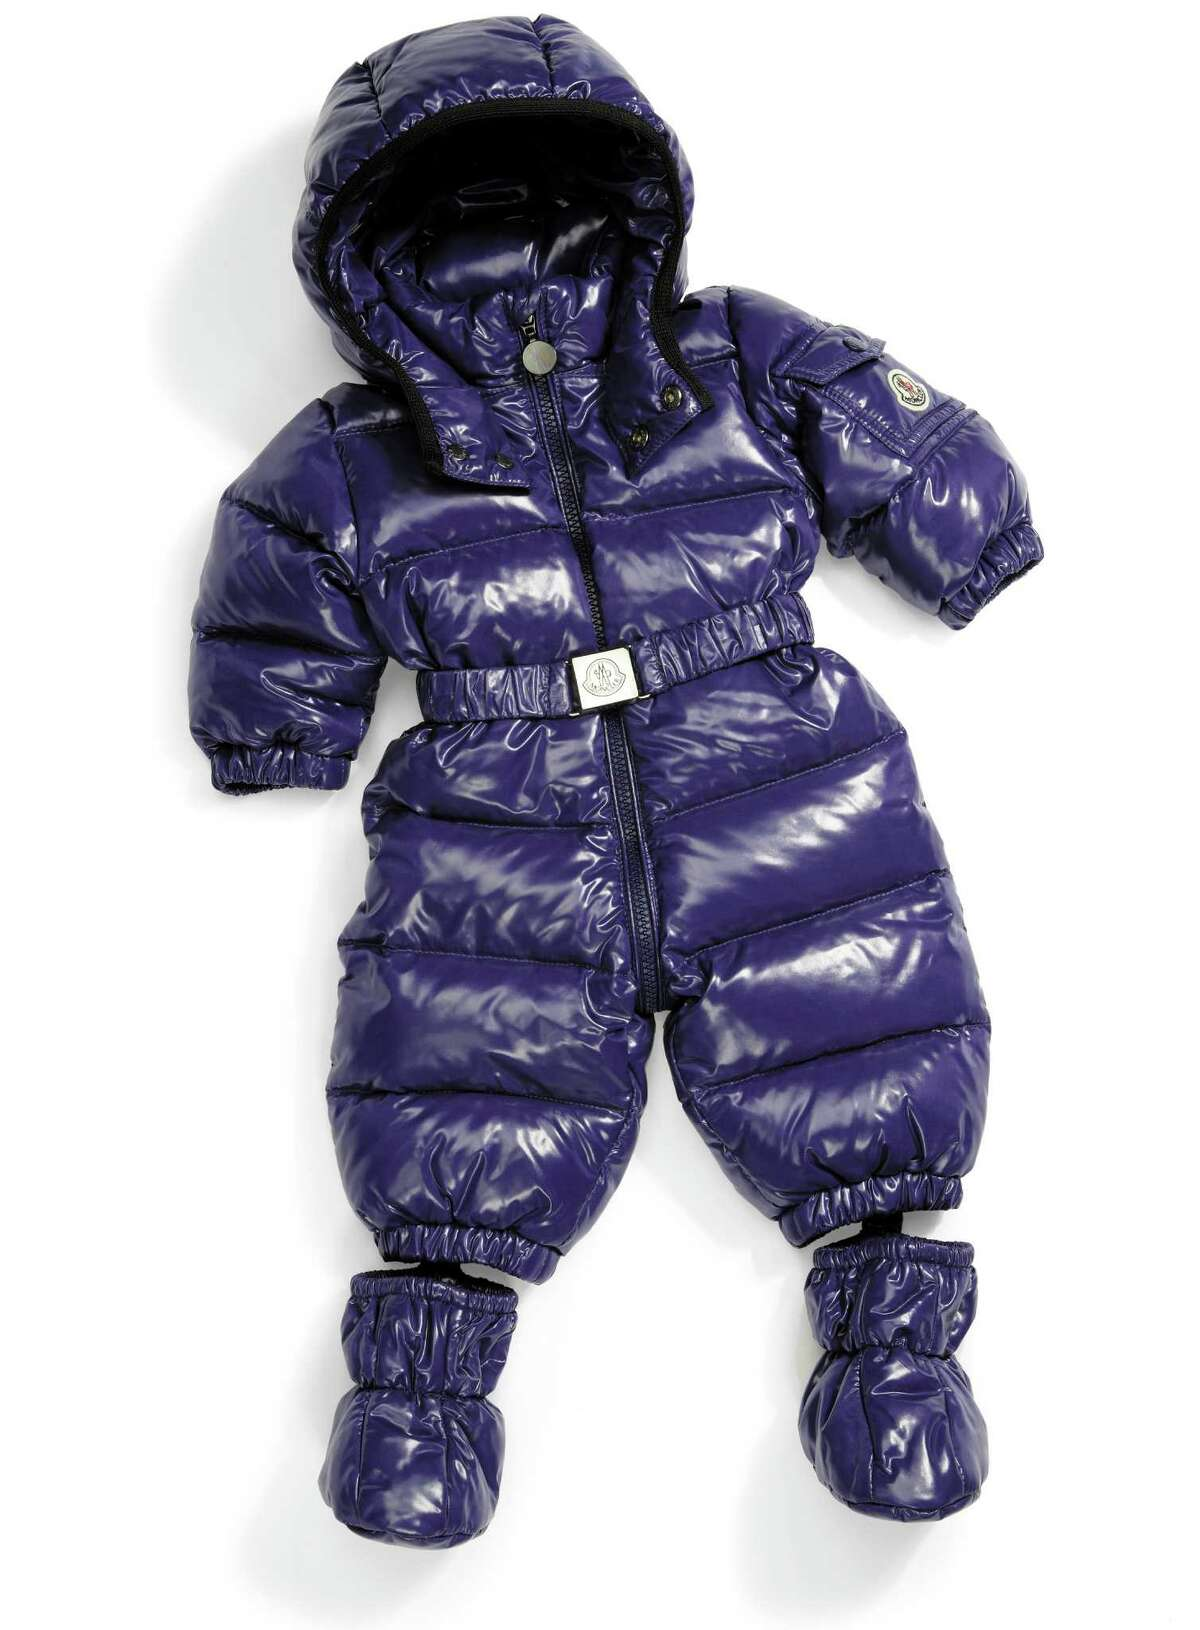 MONCLER Water-resistant onesie snowsuit with detachable boots and belt, $475.